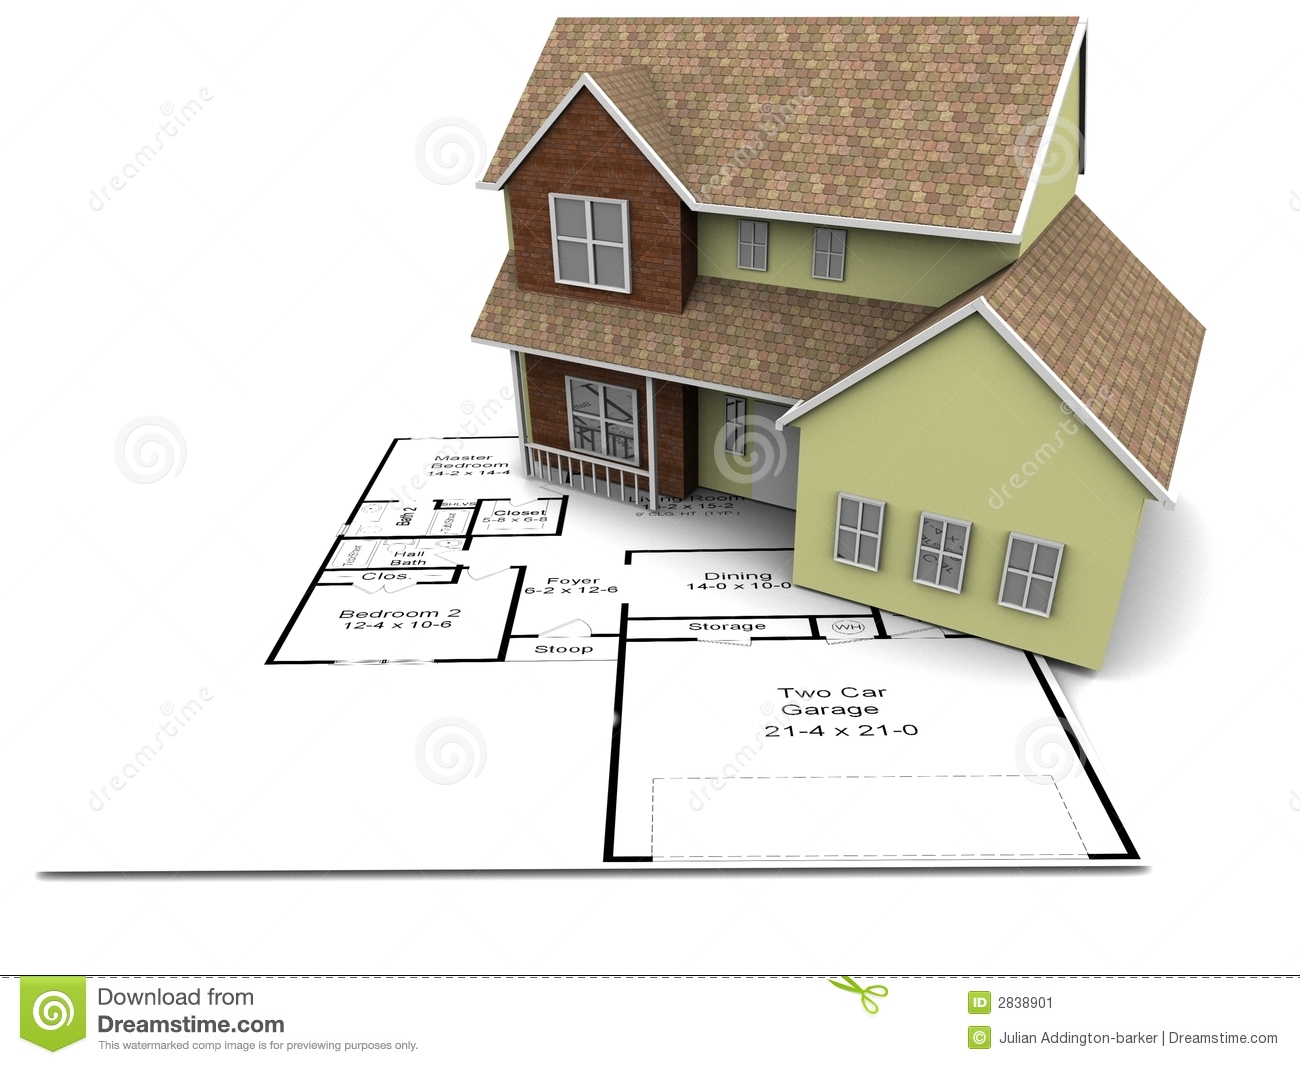 New house plans stock image image 2838901 for New house floor plans